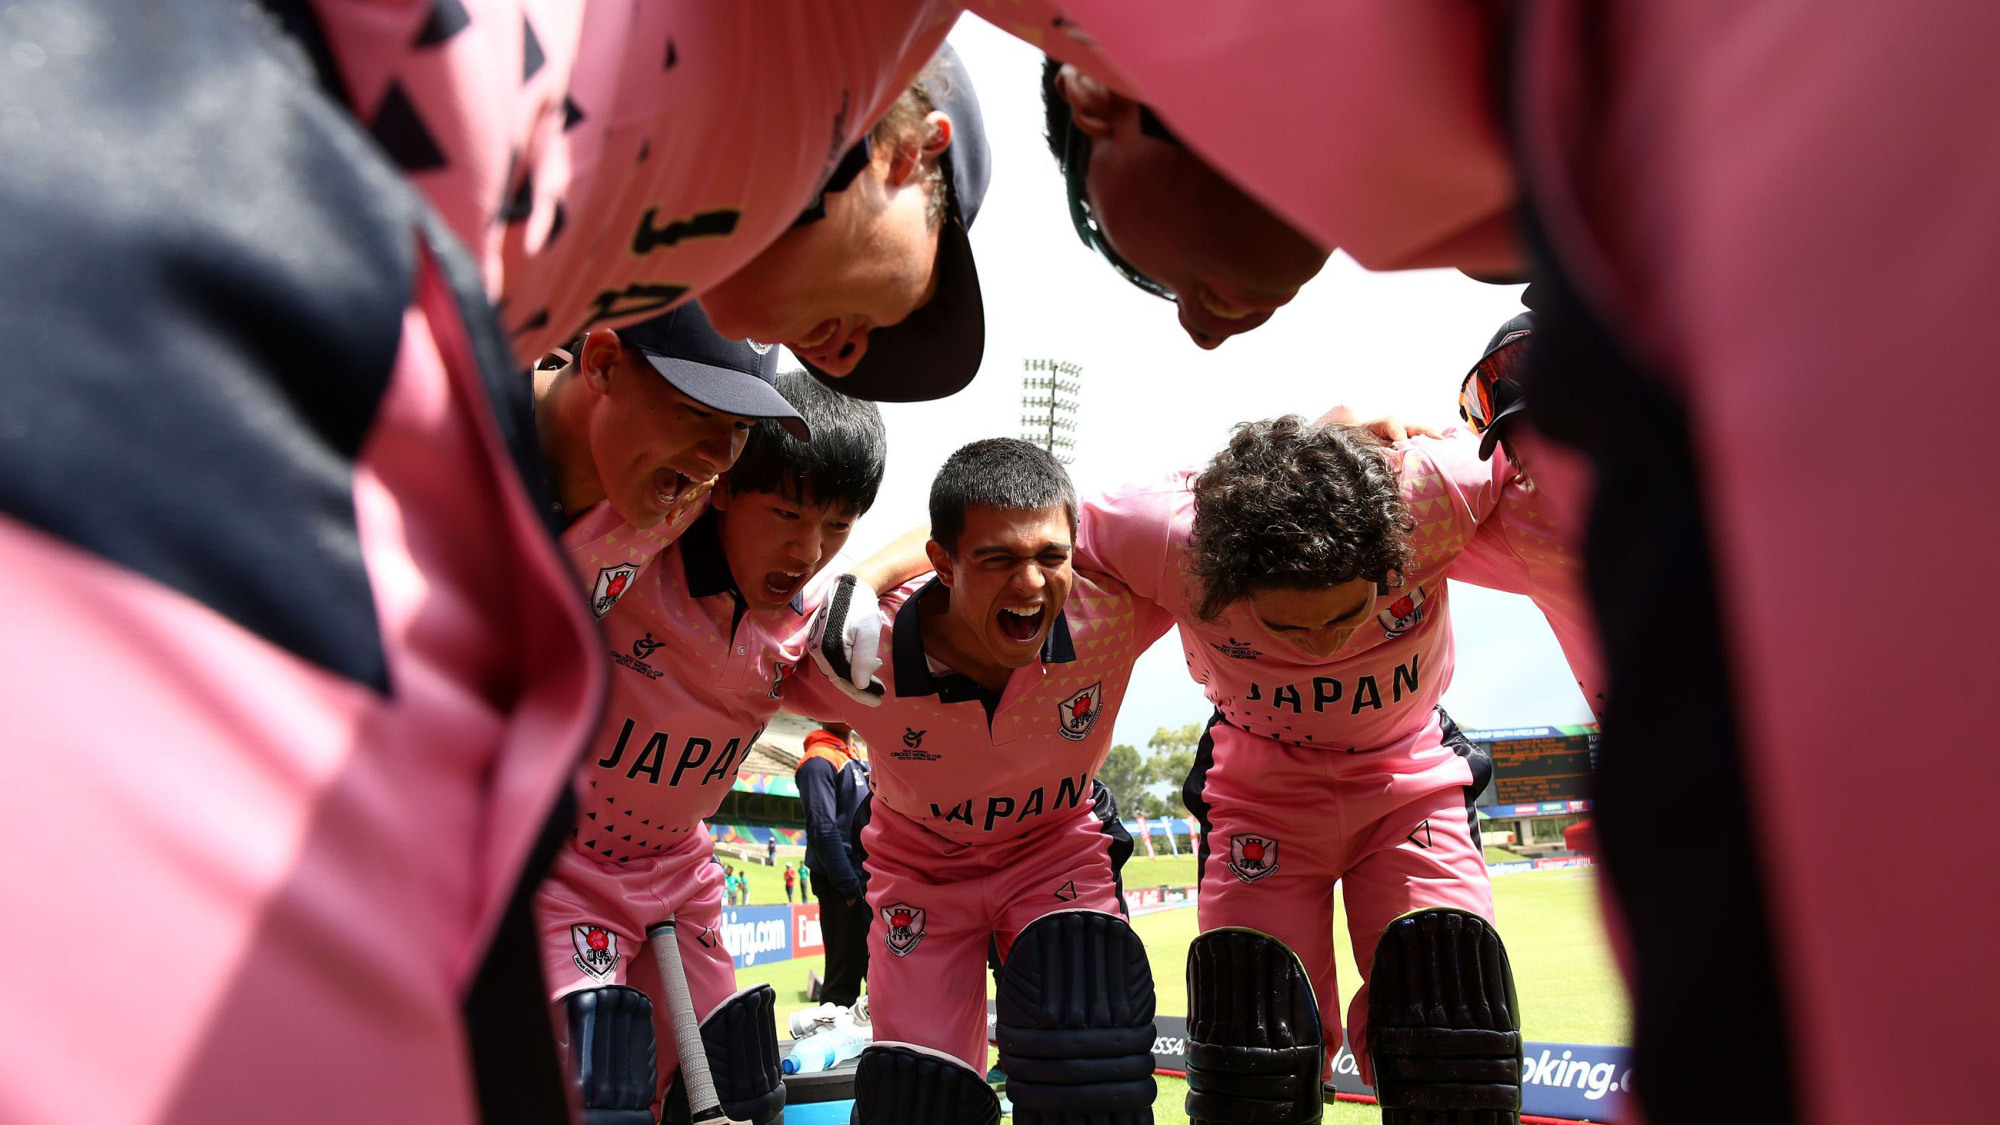 Japan players form  a huddle before their match against India in Potchefstroom, South Africa, on Jan. 21. | INTERNATIONAL CRICKET COUNCIL / VIA GETTY IMAGES